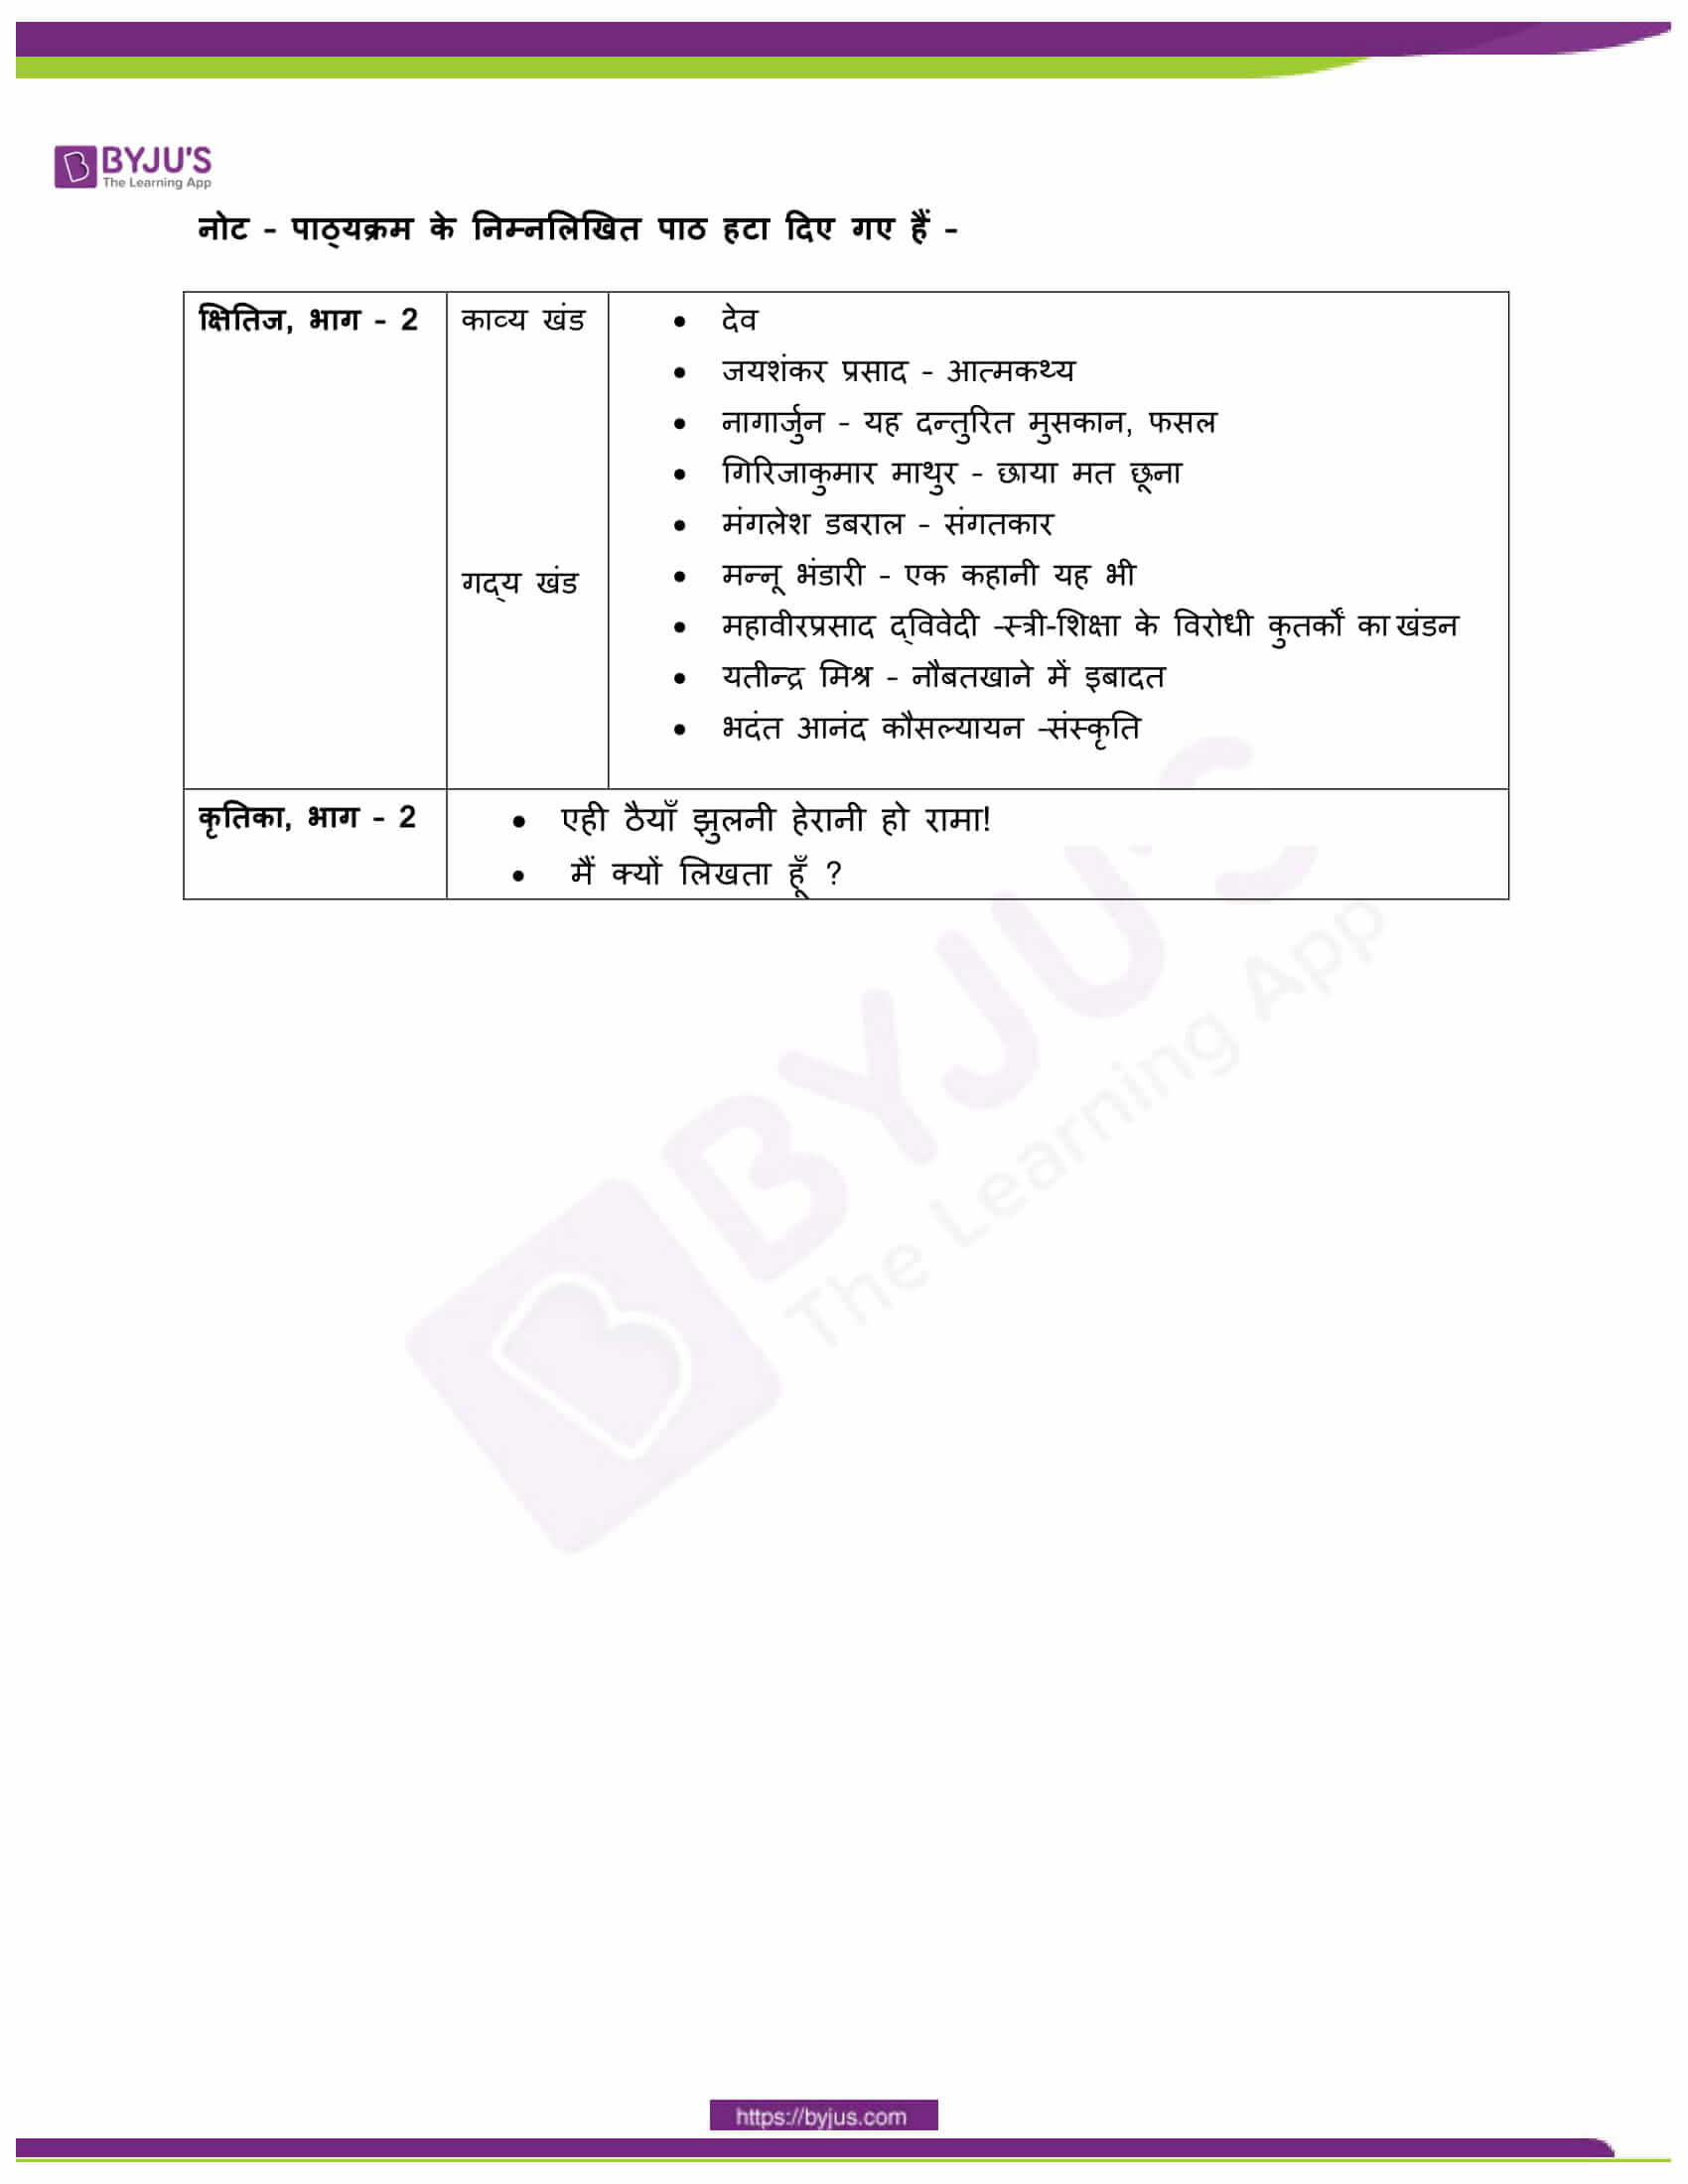 CBSE Class 10 Hindi Course A Revised Syllabus 2020 21 12